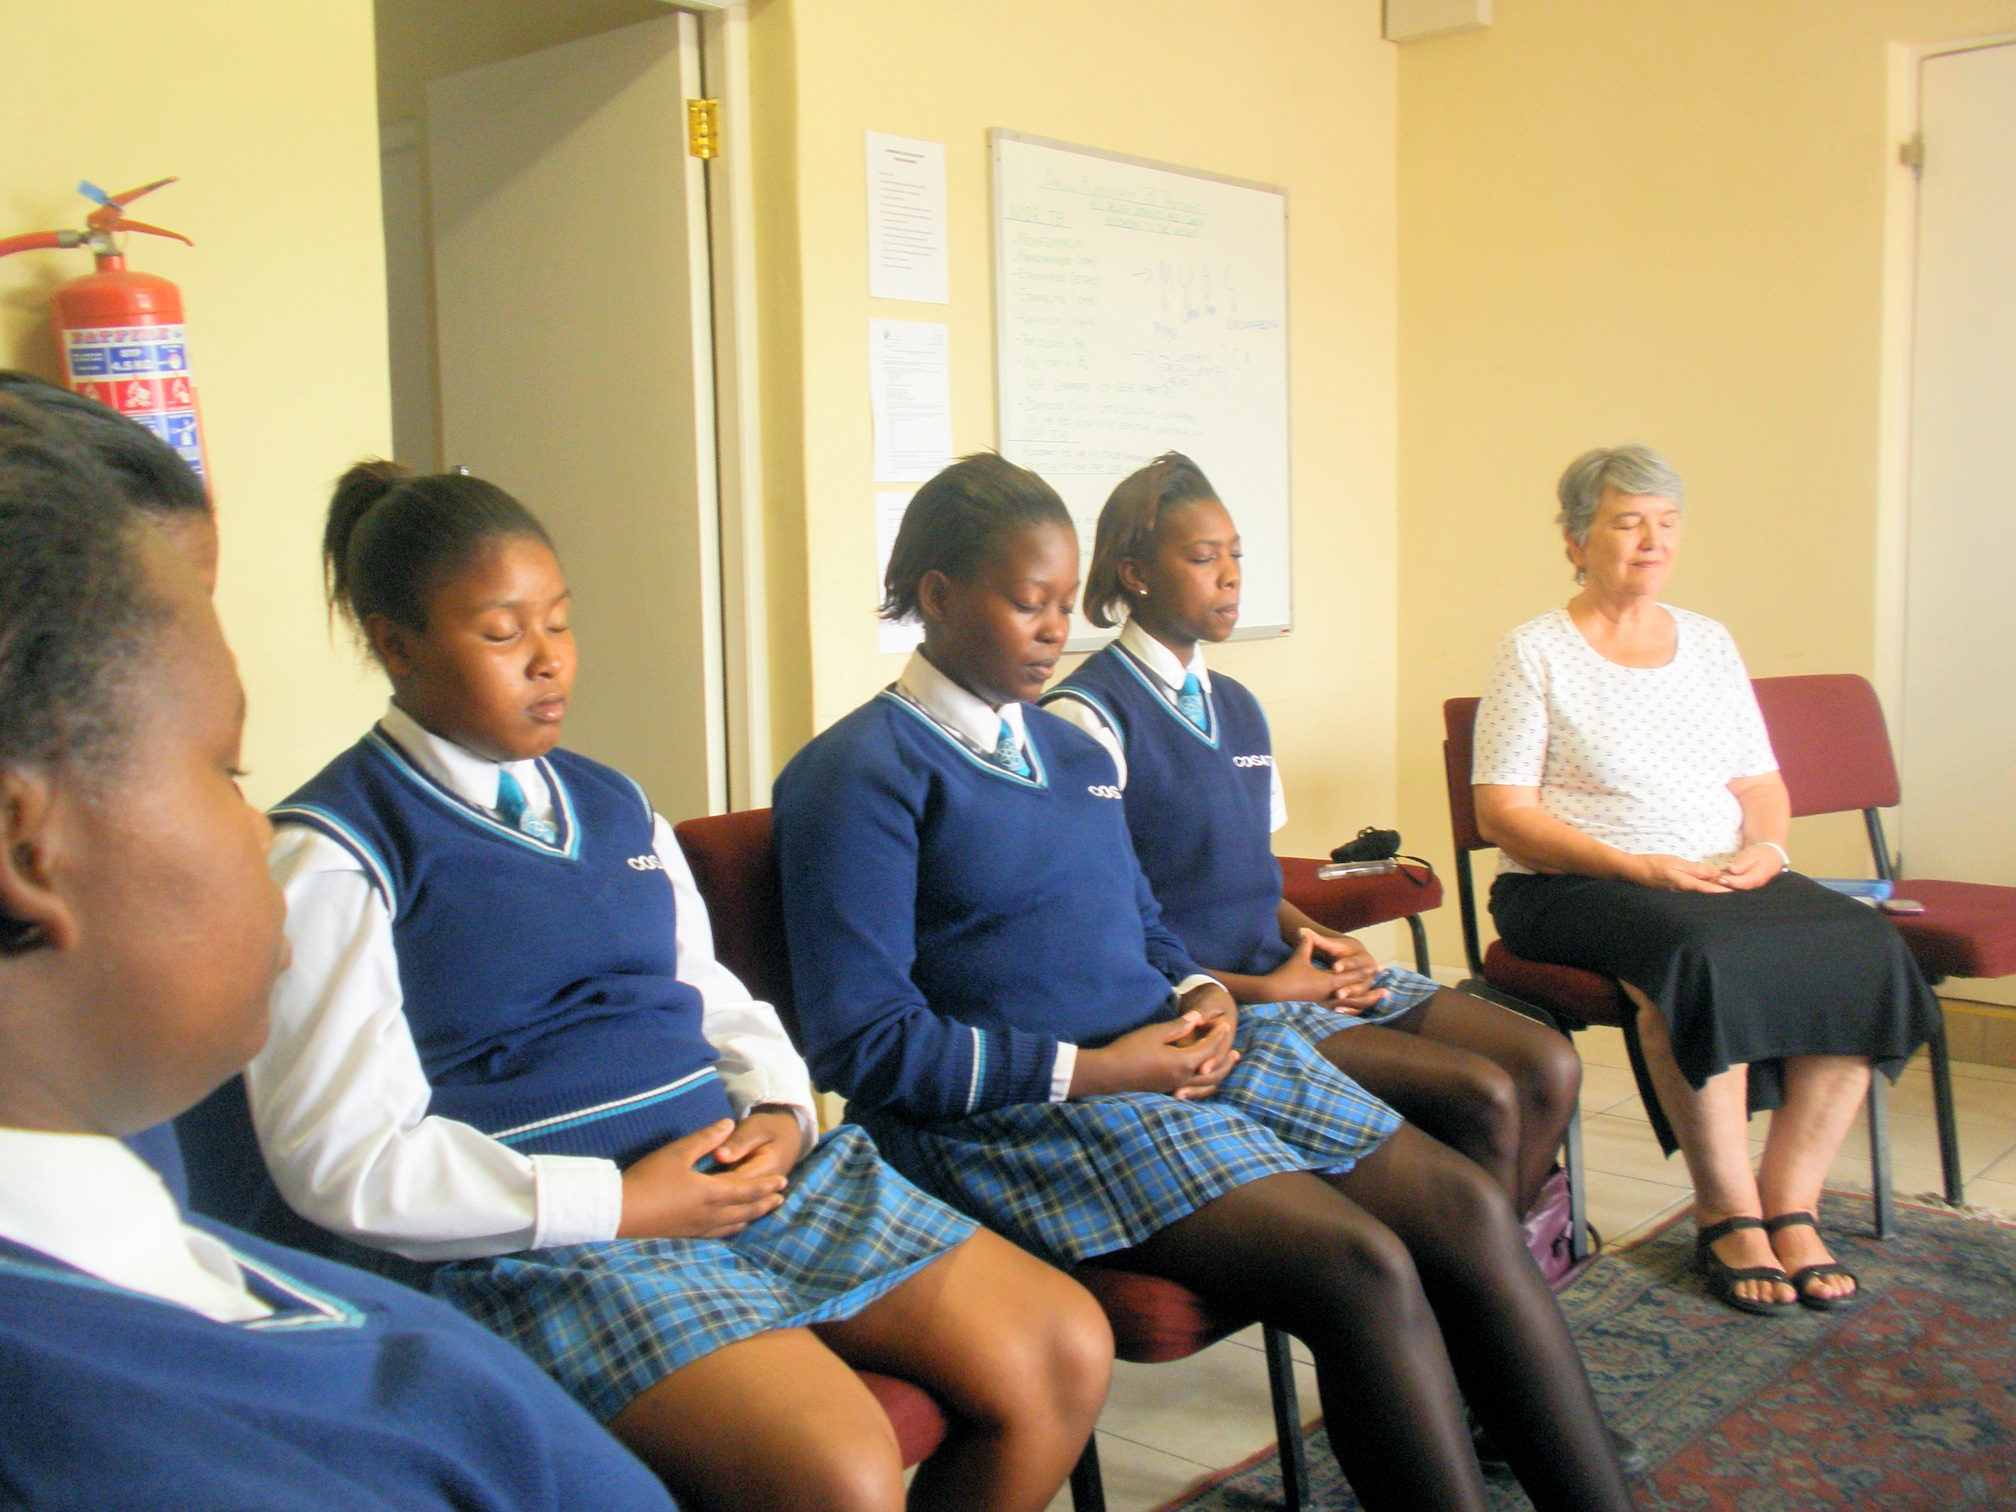 meditation extra mural classes at cosat secondary school